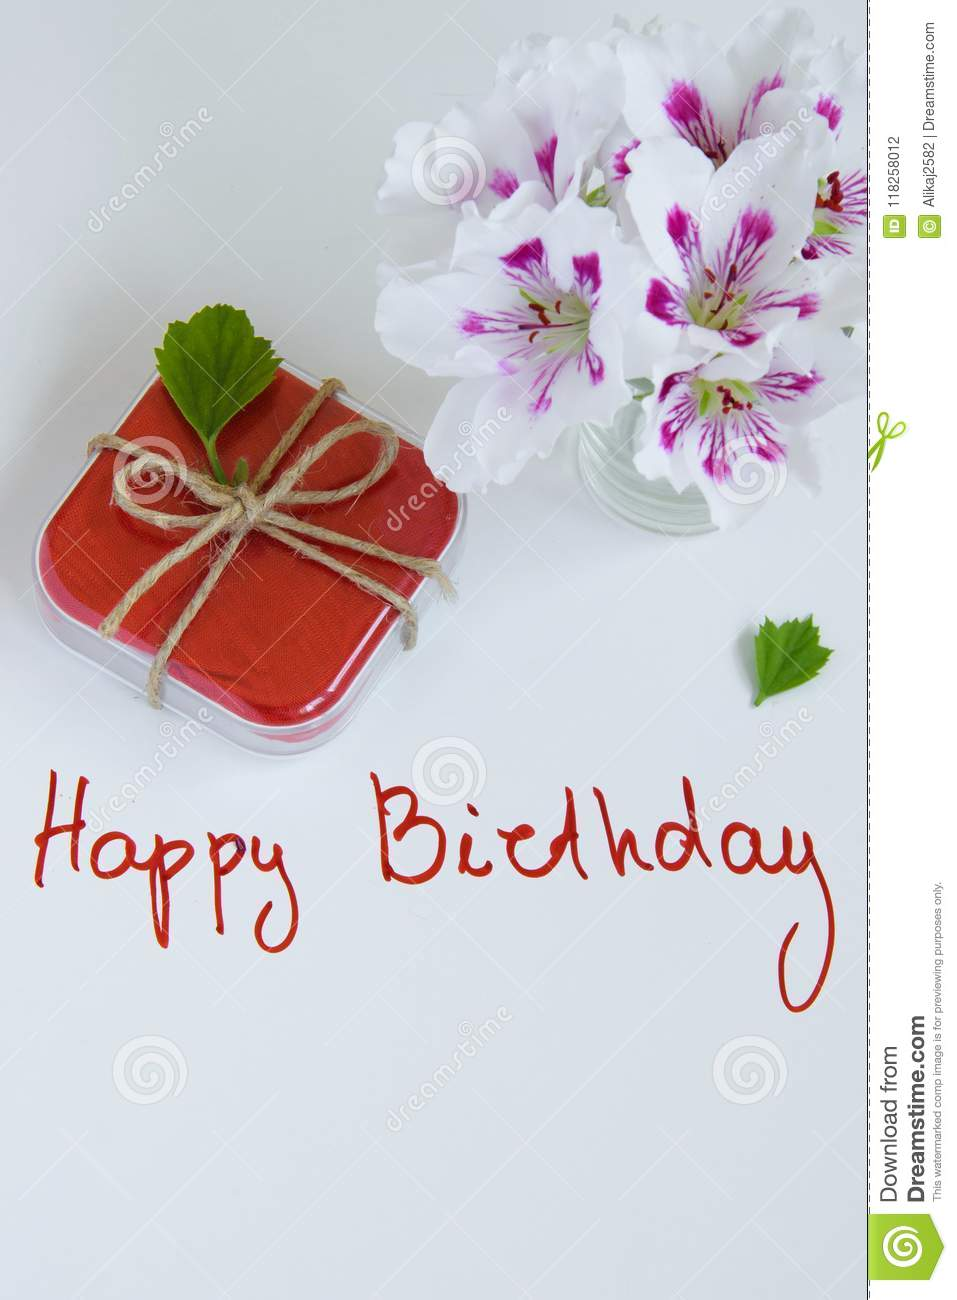 Happy Birthday Greeting Card With Gift Box And Fresh Flowers